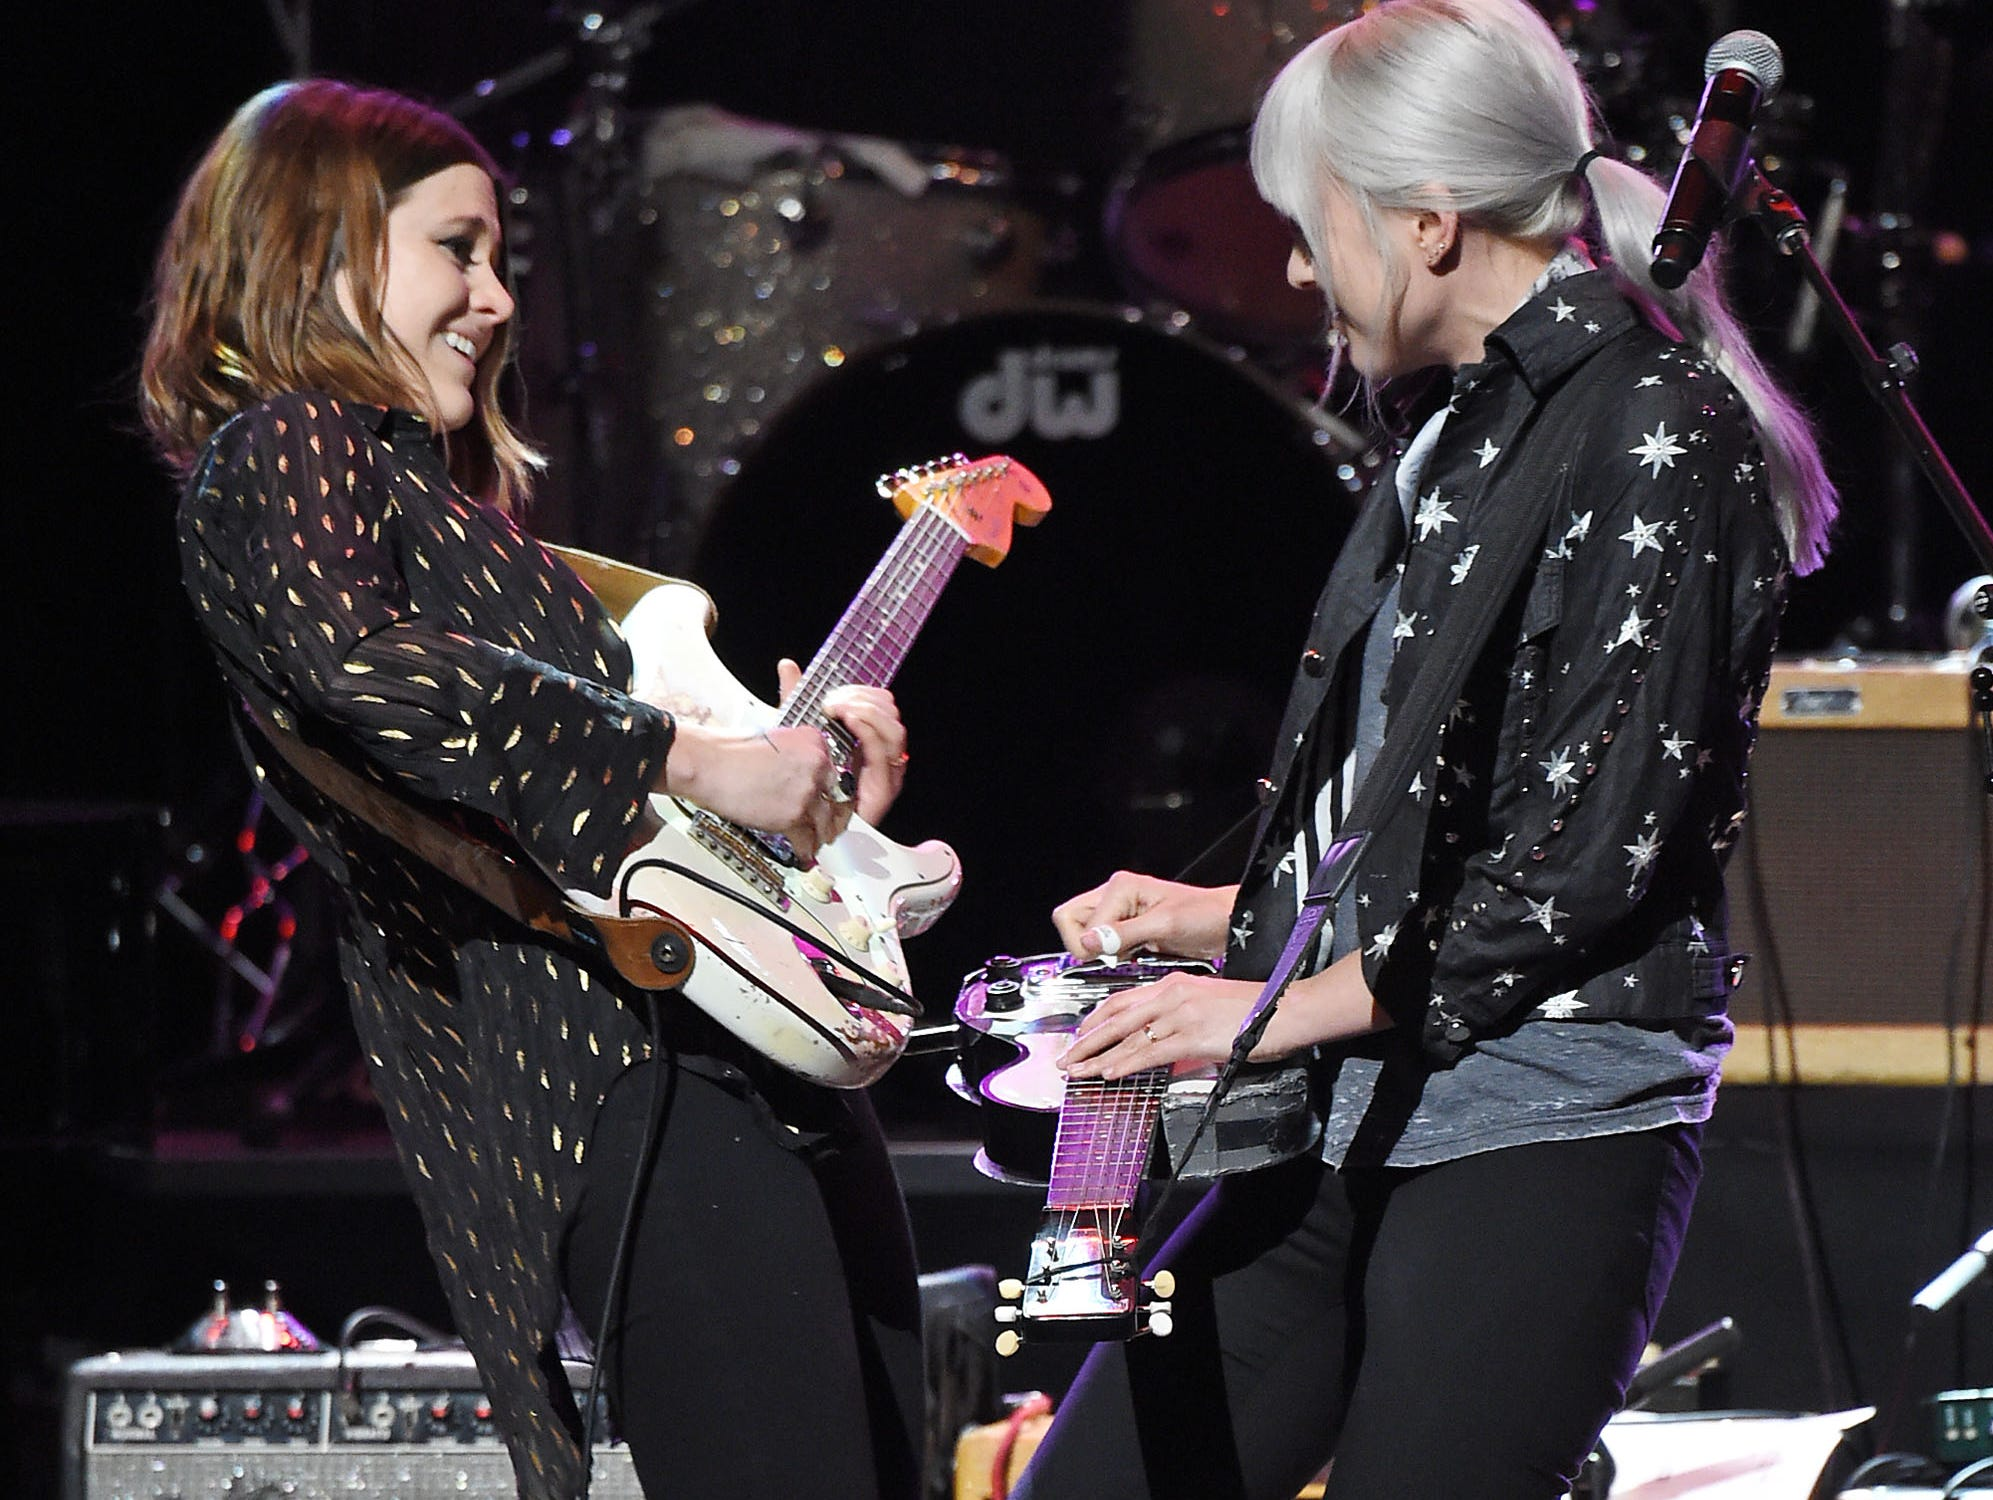 NEW YORK, NEW YORK - MARCH 07: Rebecca Lovell (L) and Megan Lovell of Larkin Poe perform onstage during the Third Annual Love Rocks NYC Benefit Concert for God's Love We Deliver on March 07, 2019 in New York City. (Photo by Jamie McCarthy/Getty Images for Gods Love we Deliver ) ORG XMIT: 775301432 ORIG FILE ID: 1134388452